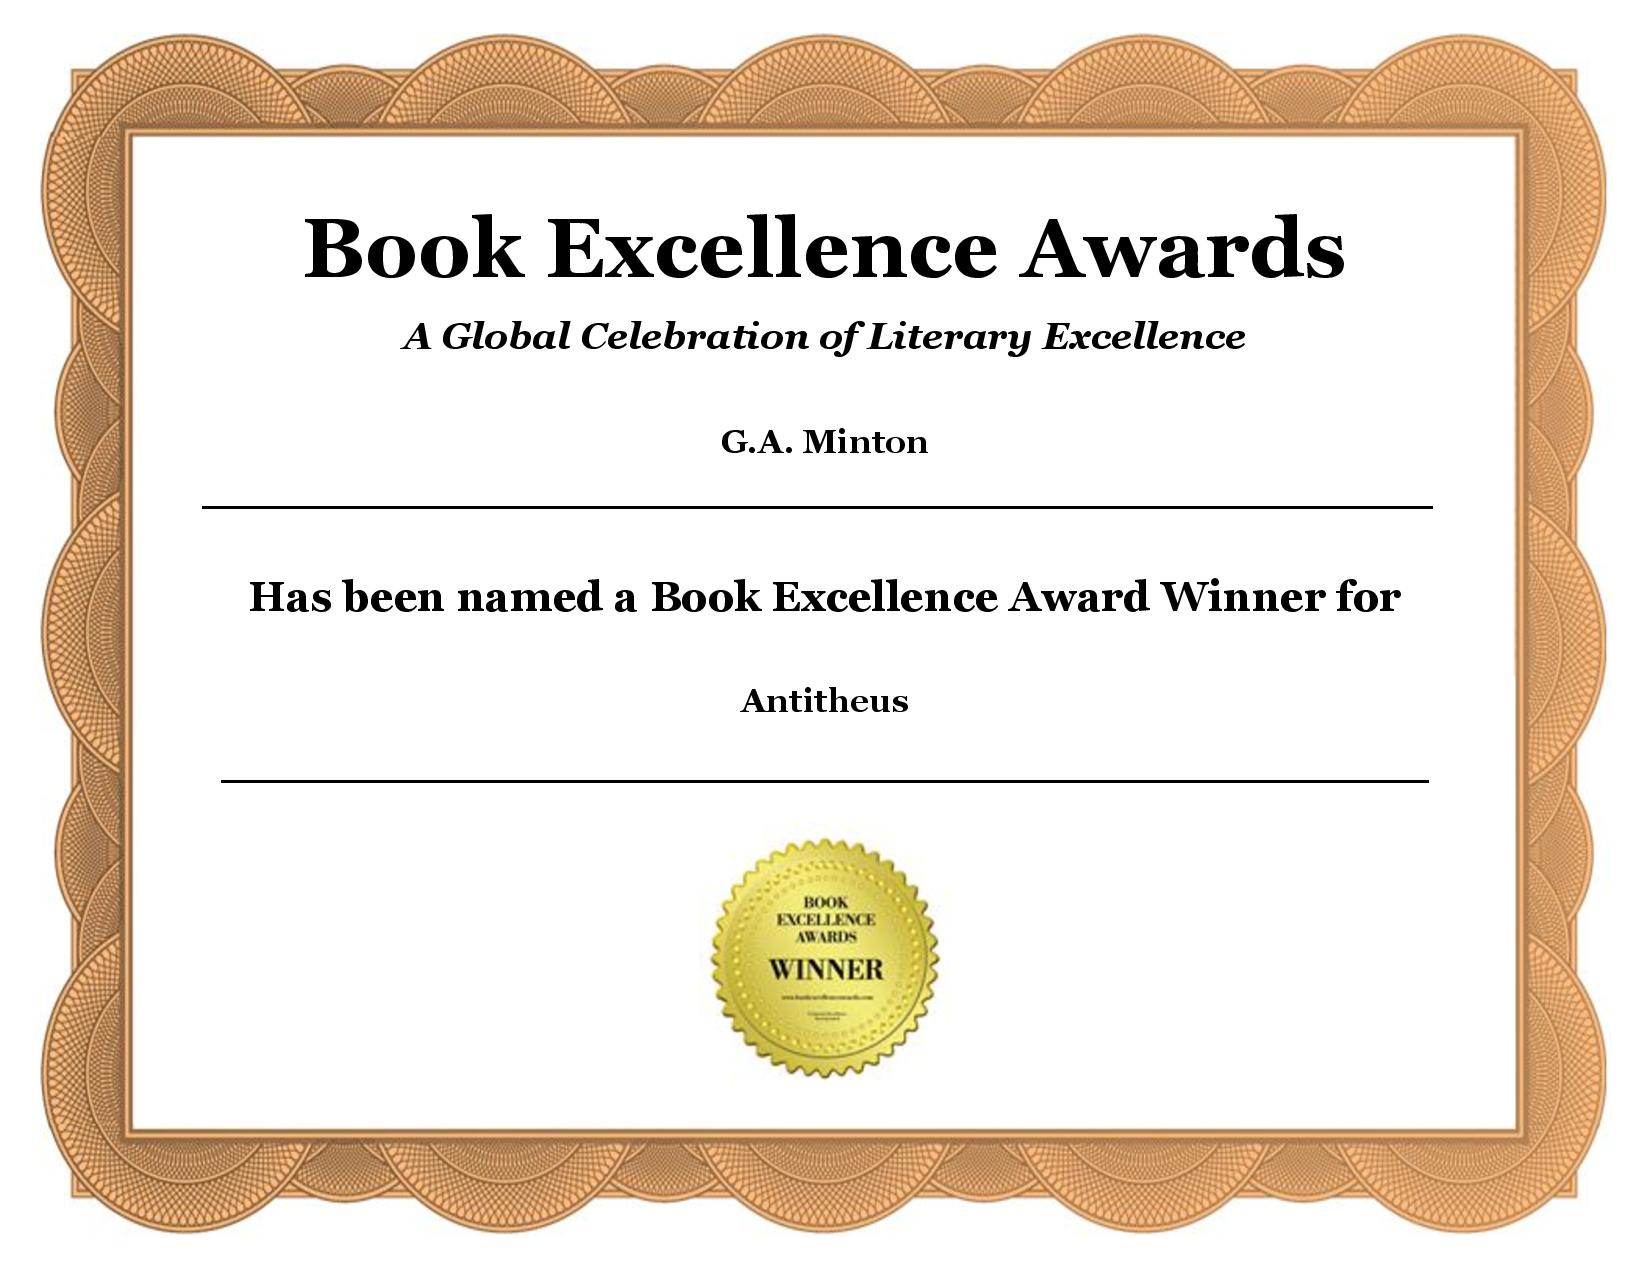 2018 BOOK EXCELLENCE AWARD WINNER